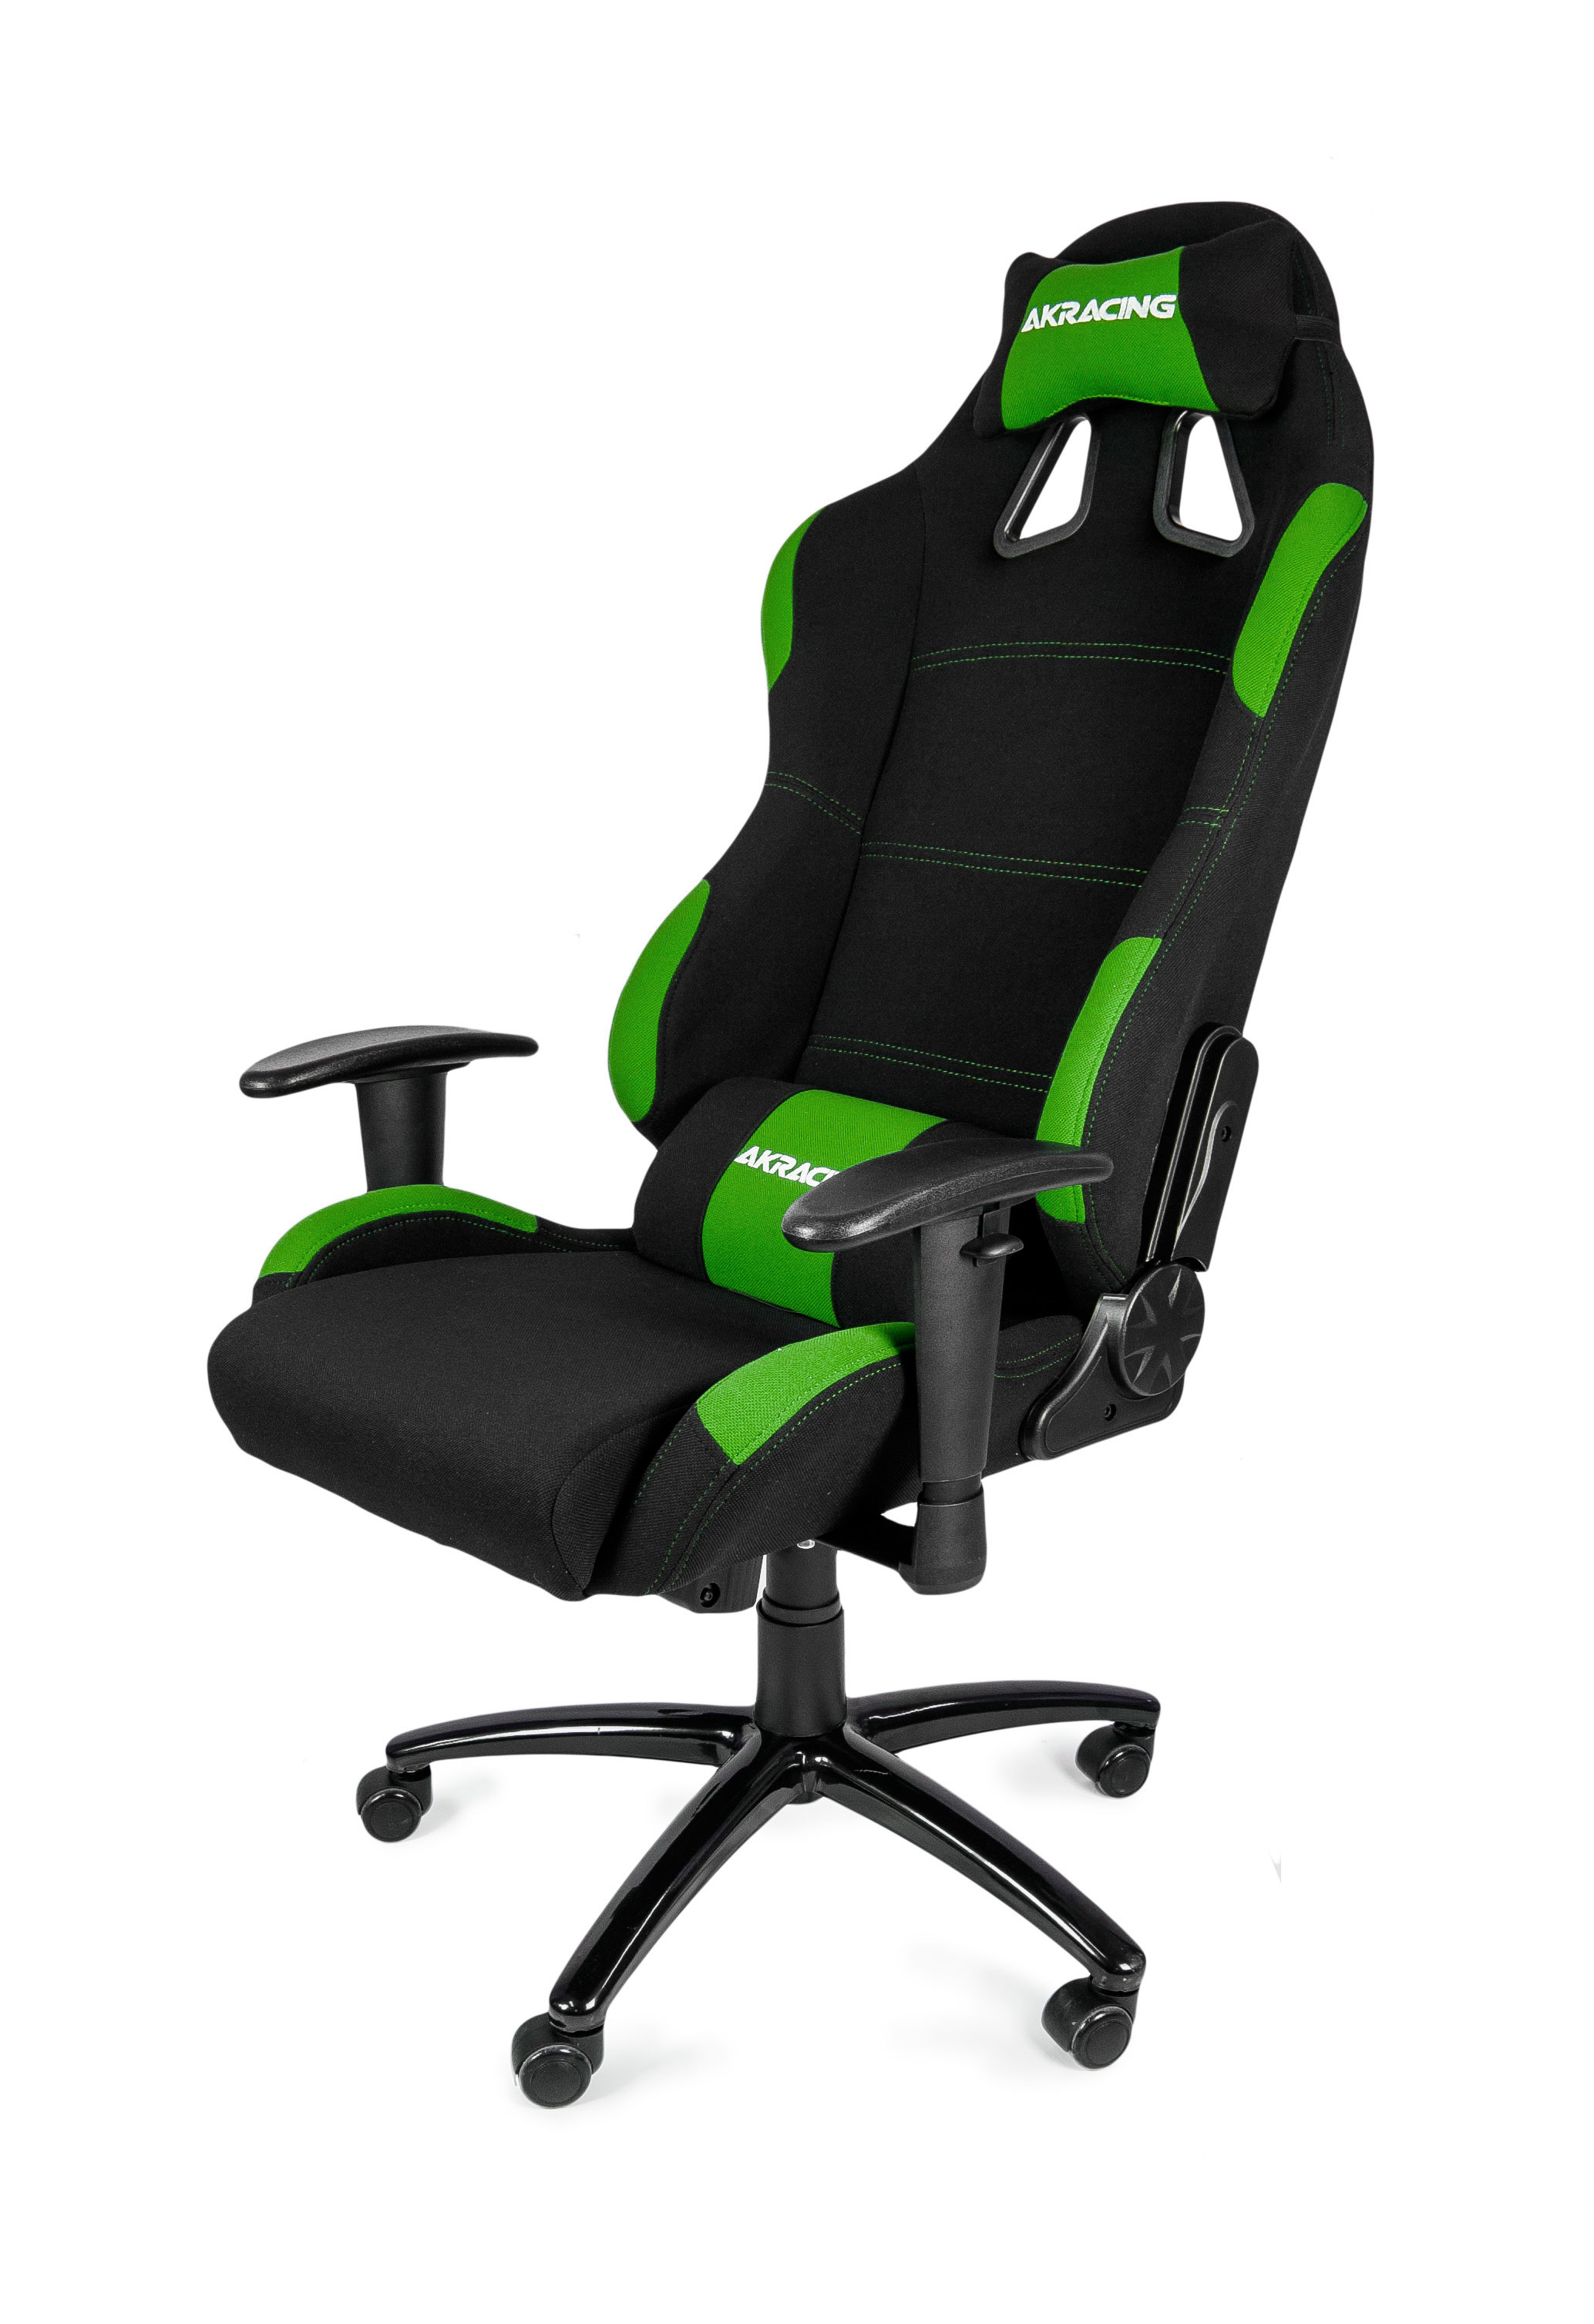 Scorpion Computer Chair Akracing Gaming Chair Black Green Ak K7012 Bg